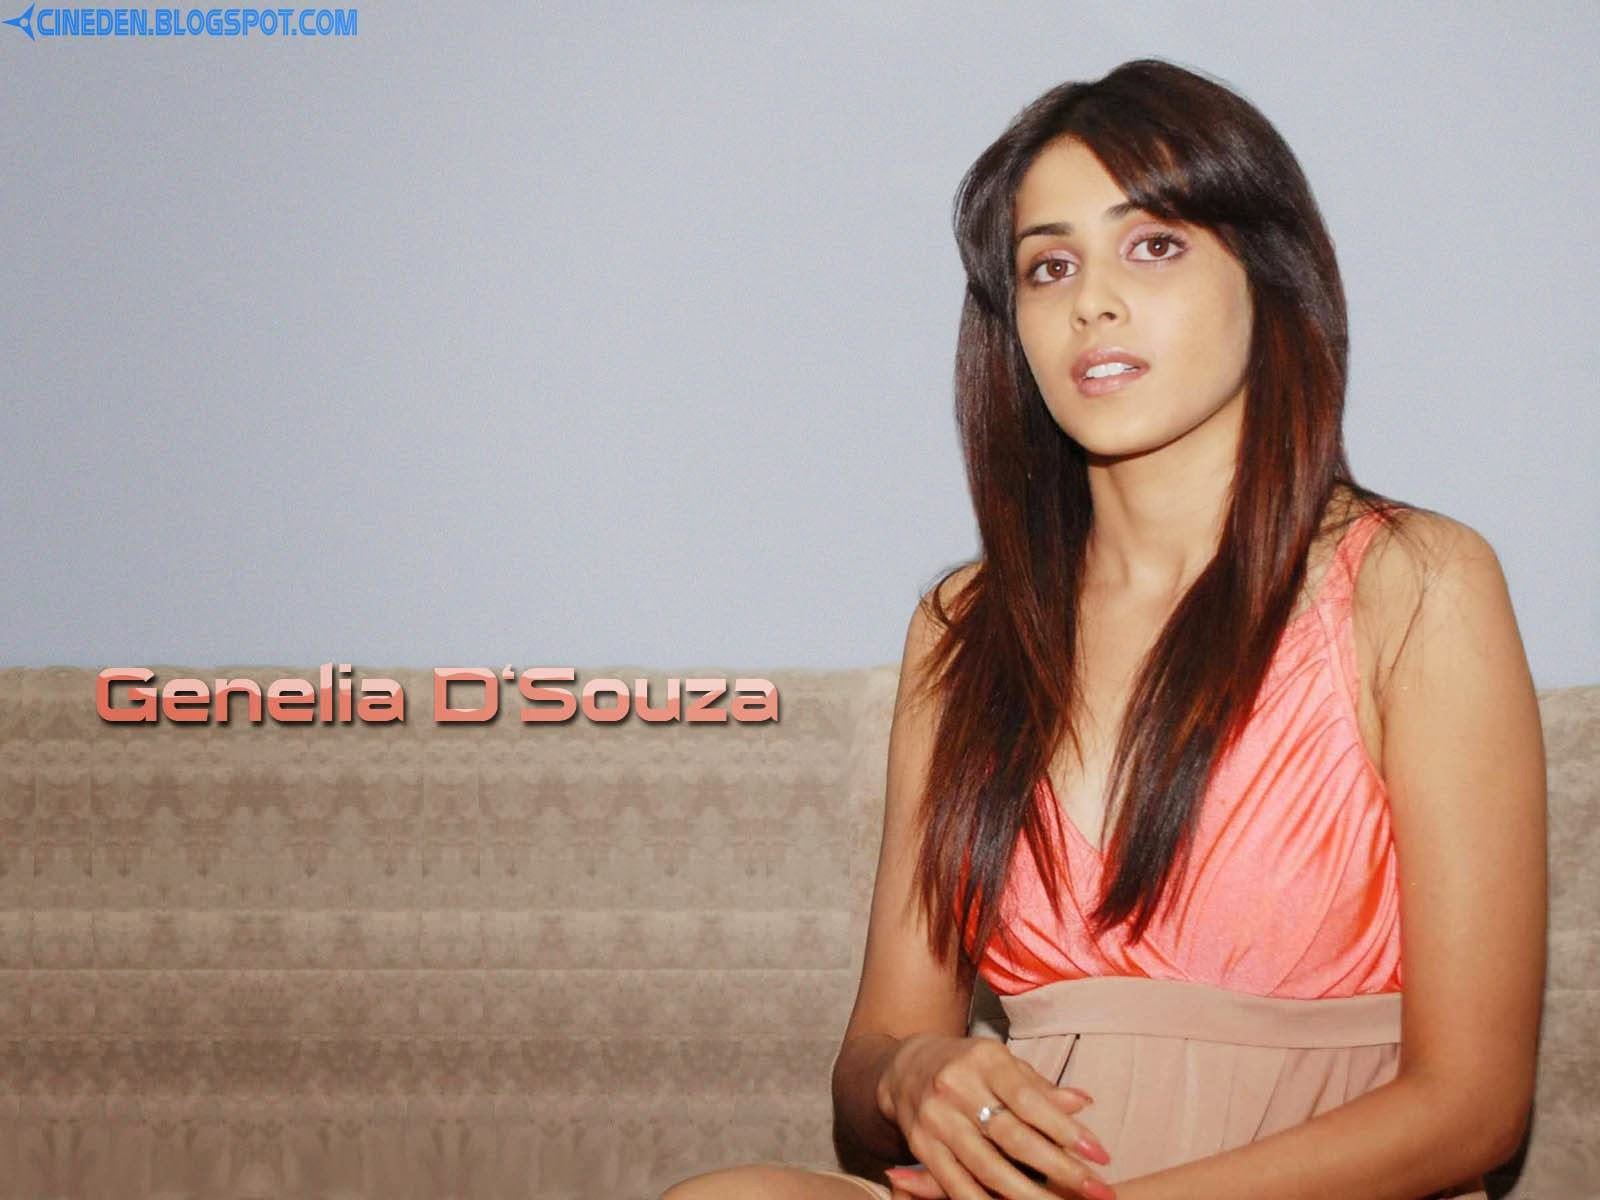 Is Genelia D'Souza pregnant? - CineDen